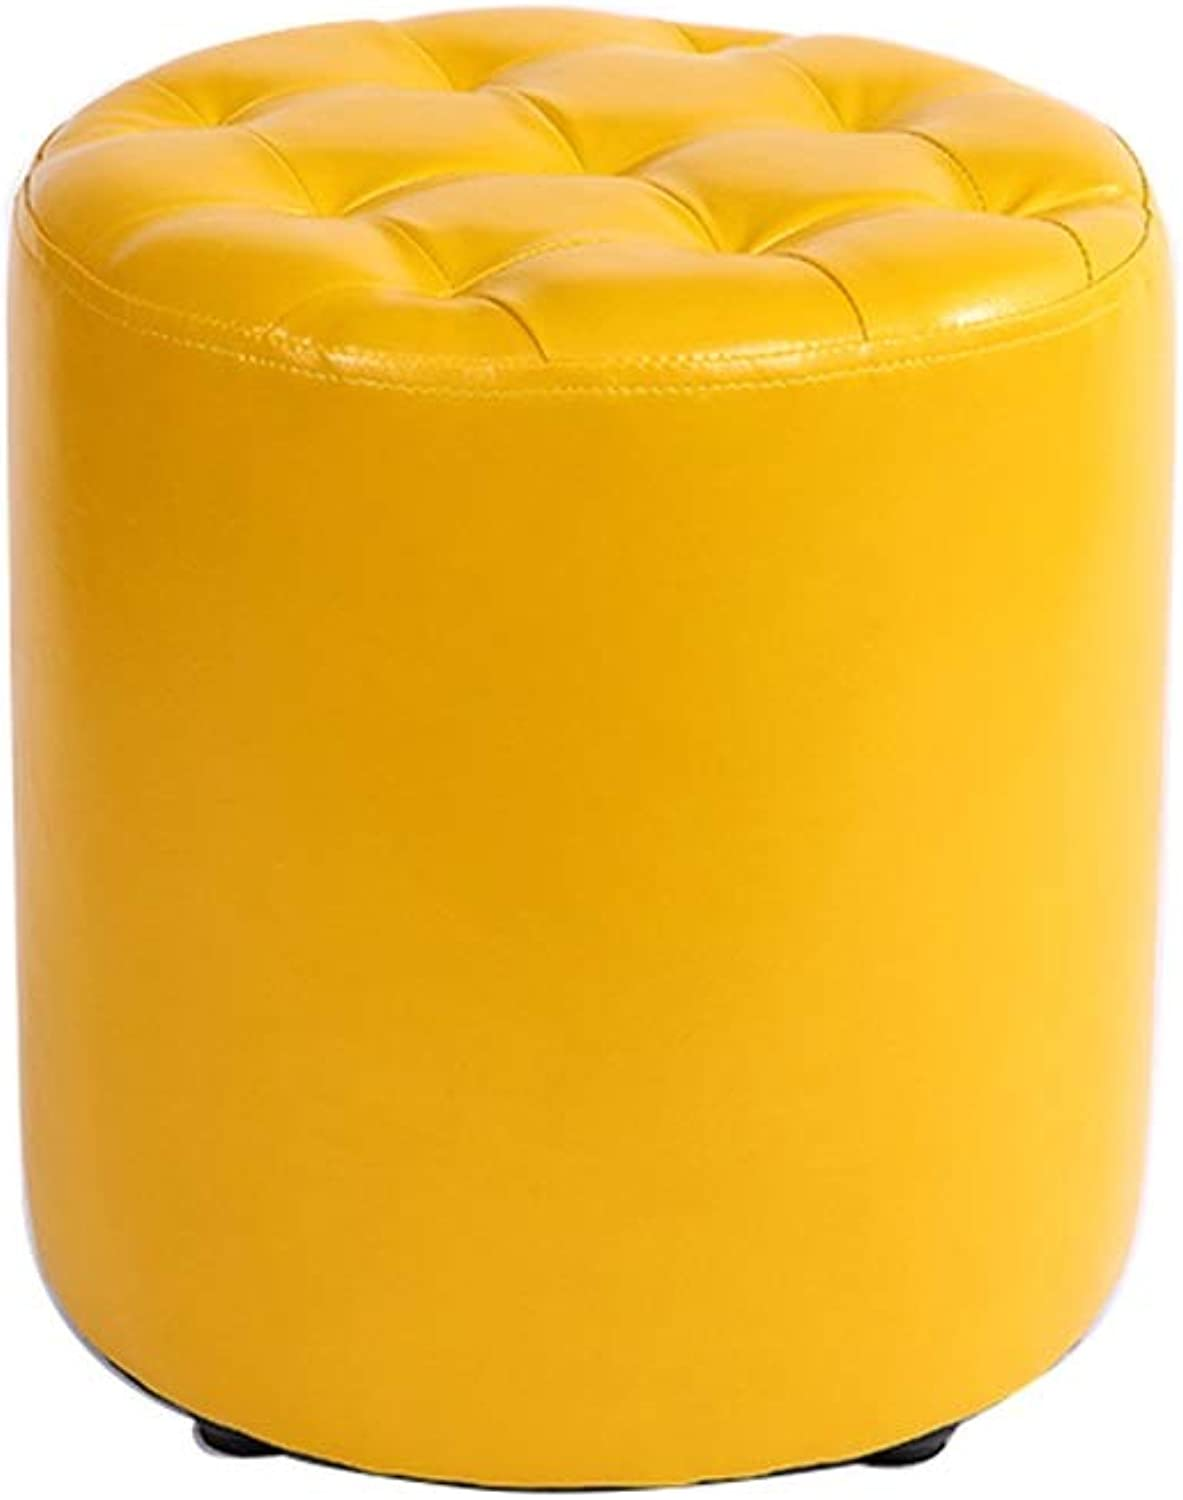 Small Round Stool Footstool Waterproof Pu Leather Stool Upholstered Pouffe Low Stool for Kids & Adults 100kg Weight Capacity Load(30×35cm)